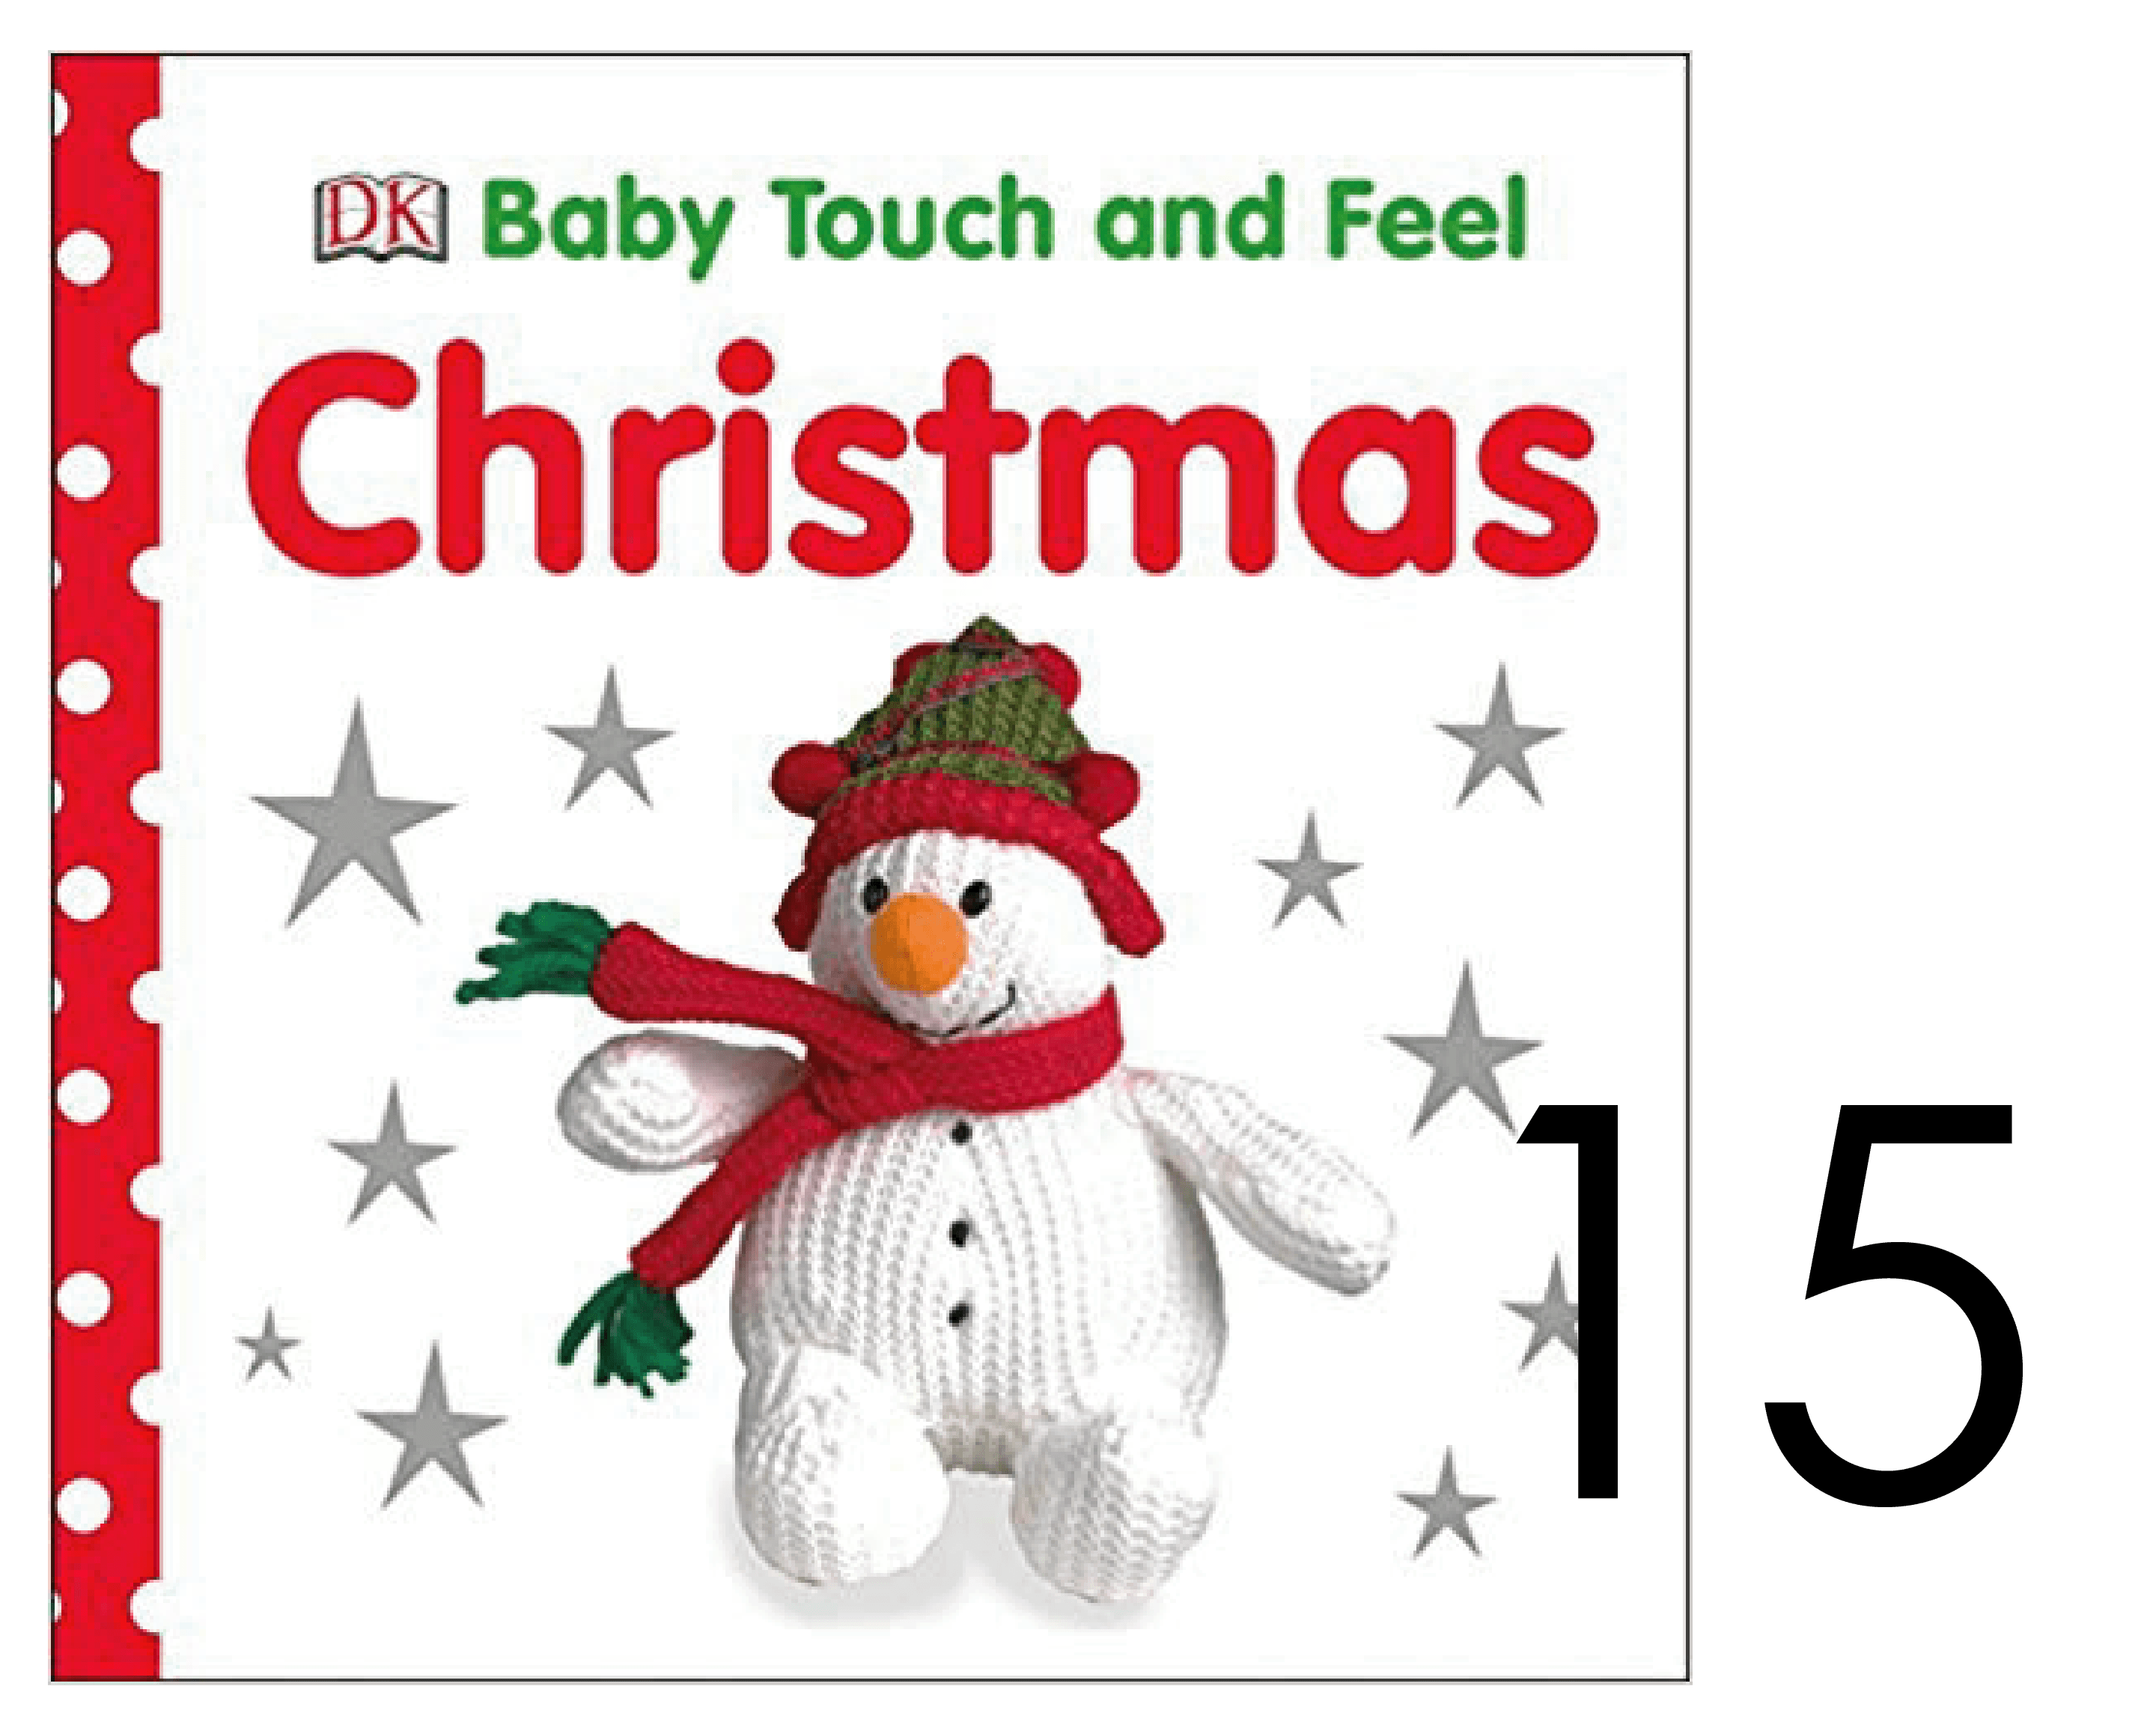 Christmas Baby Touch and Feel Book for Infants